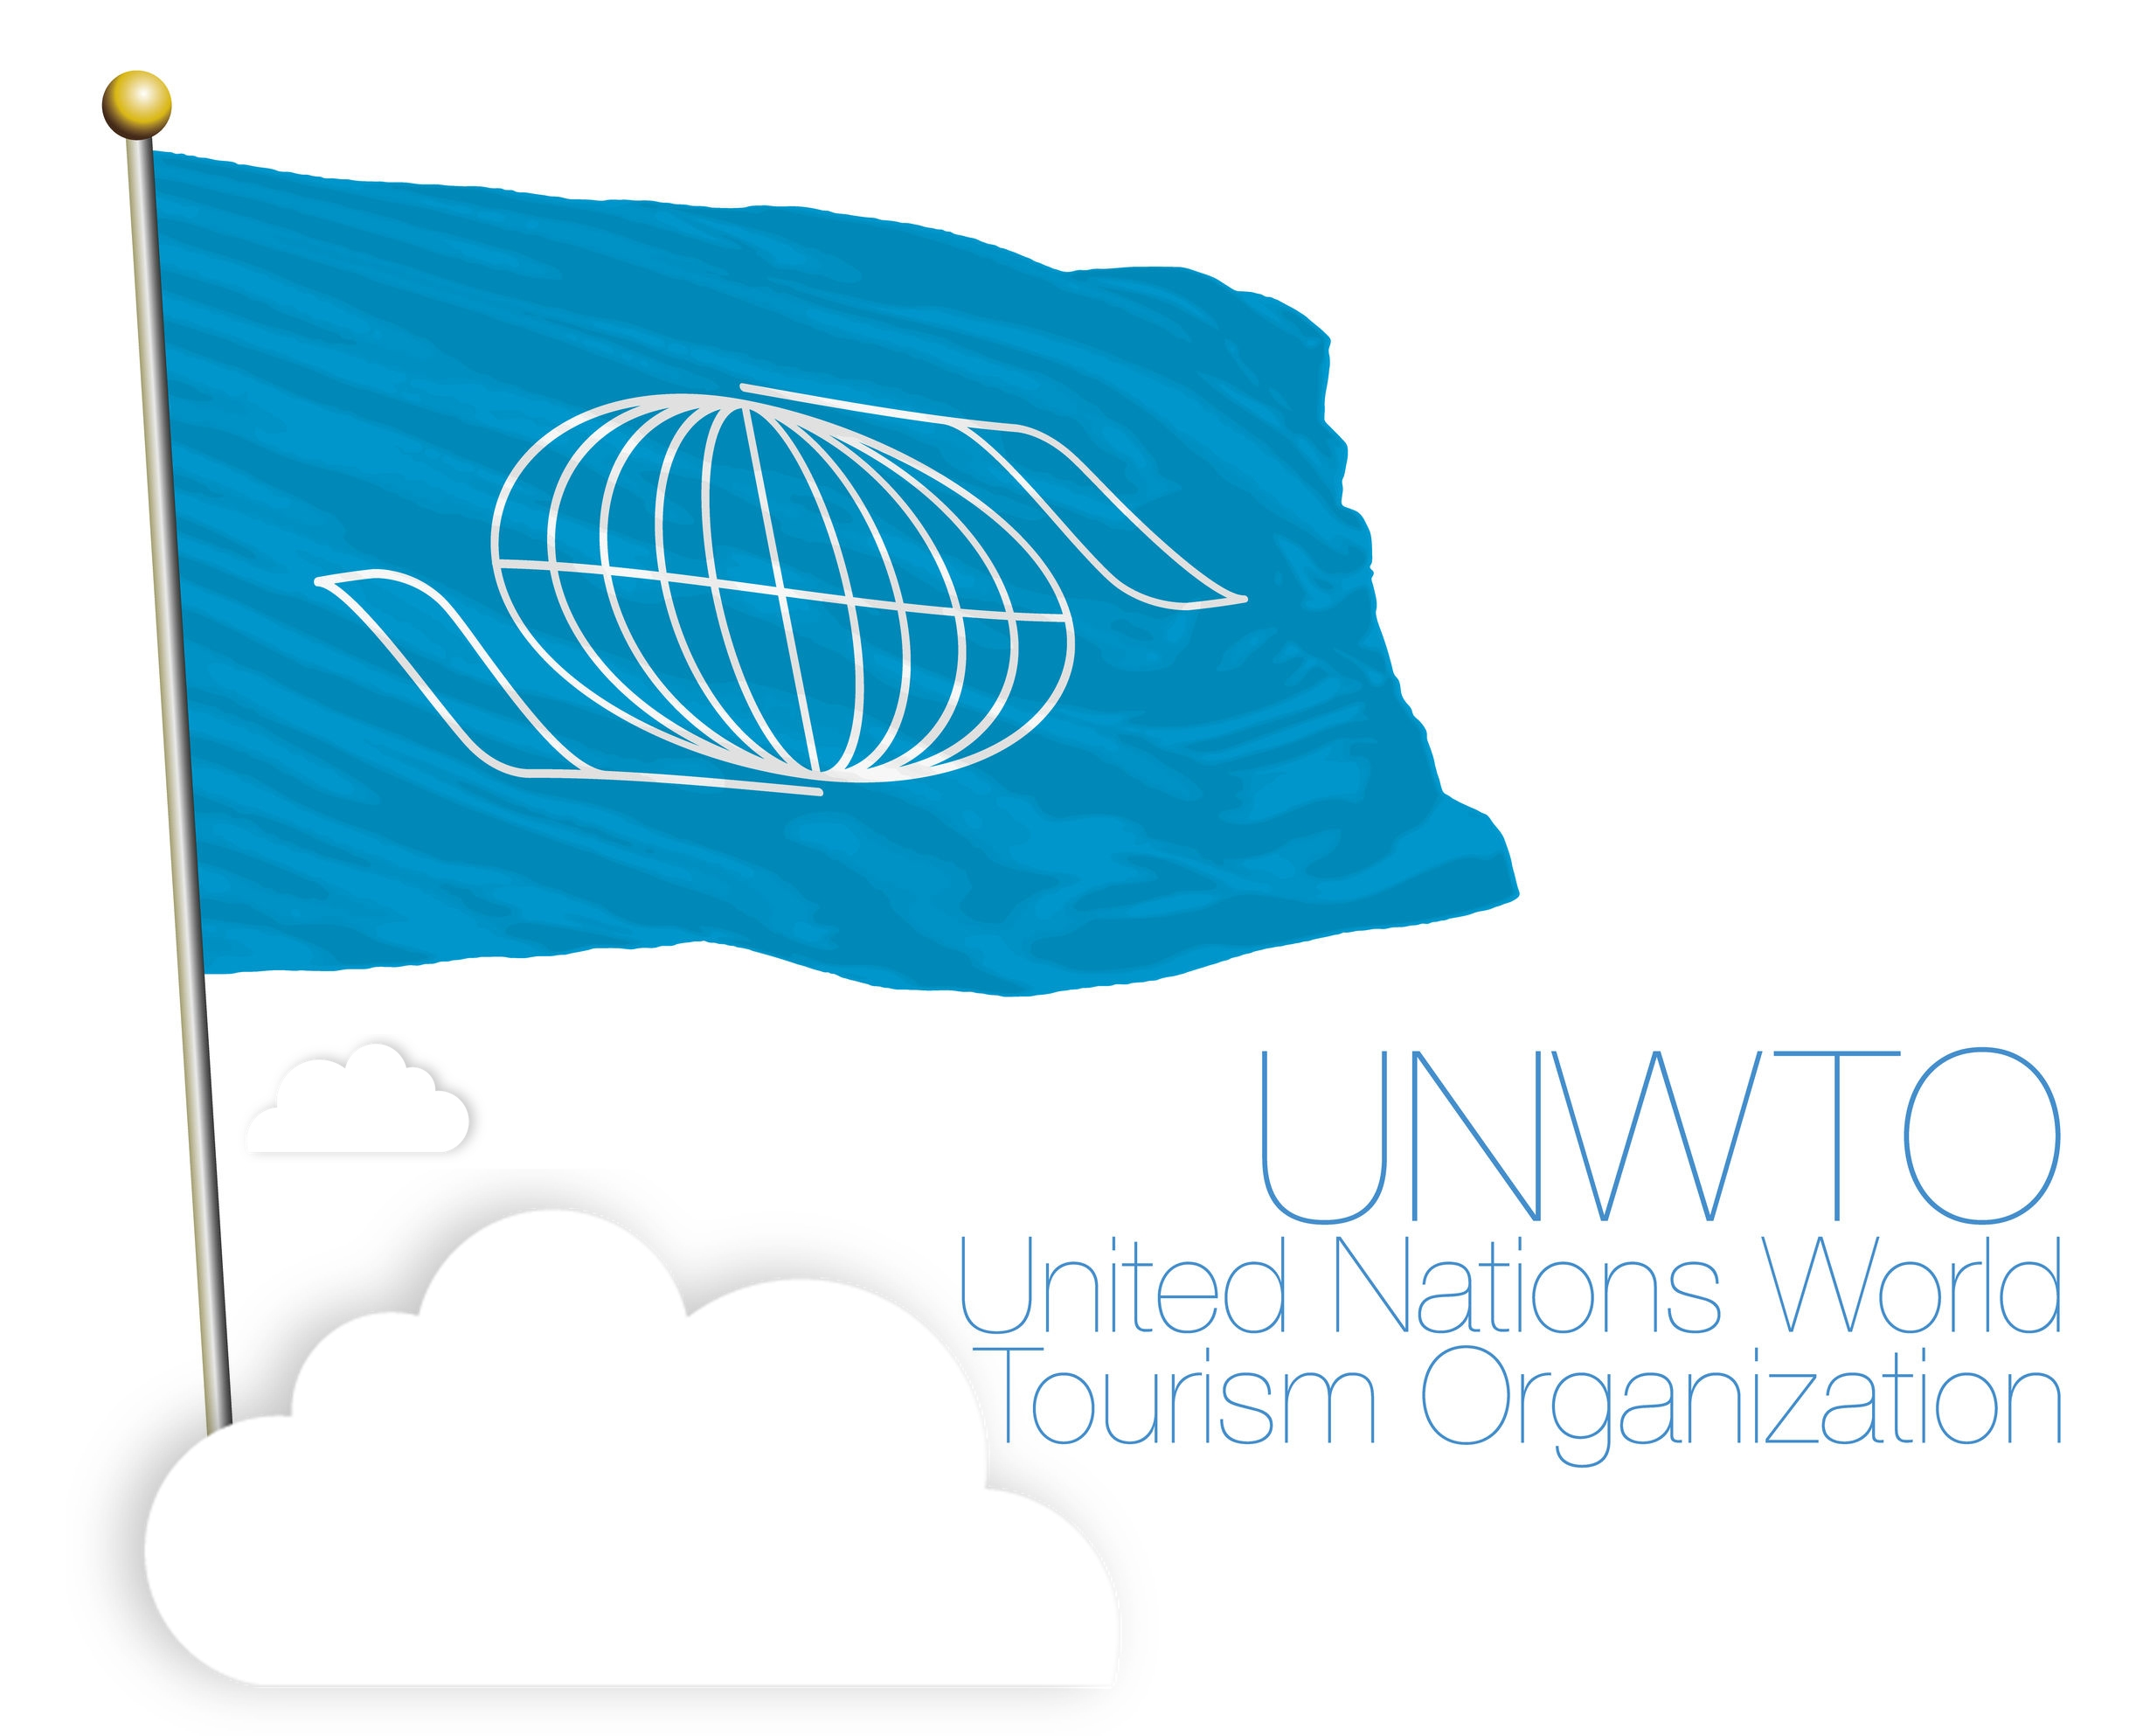 82561199 - unwto united nations world tourism organization, flag and symbol